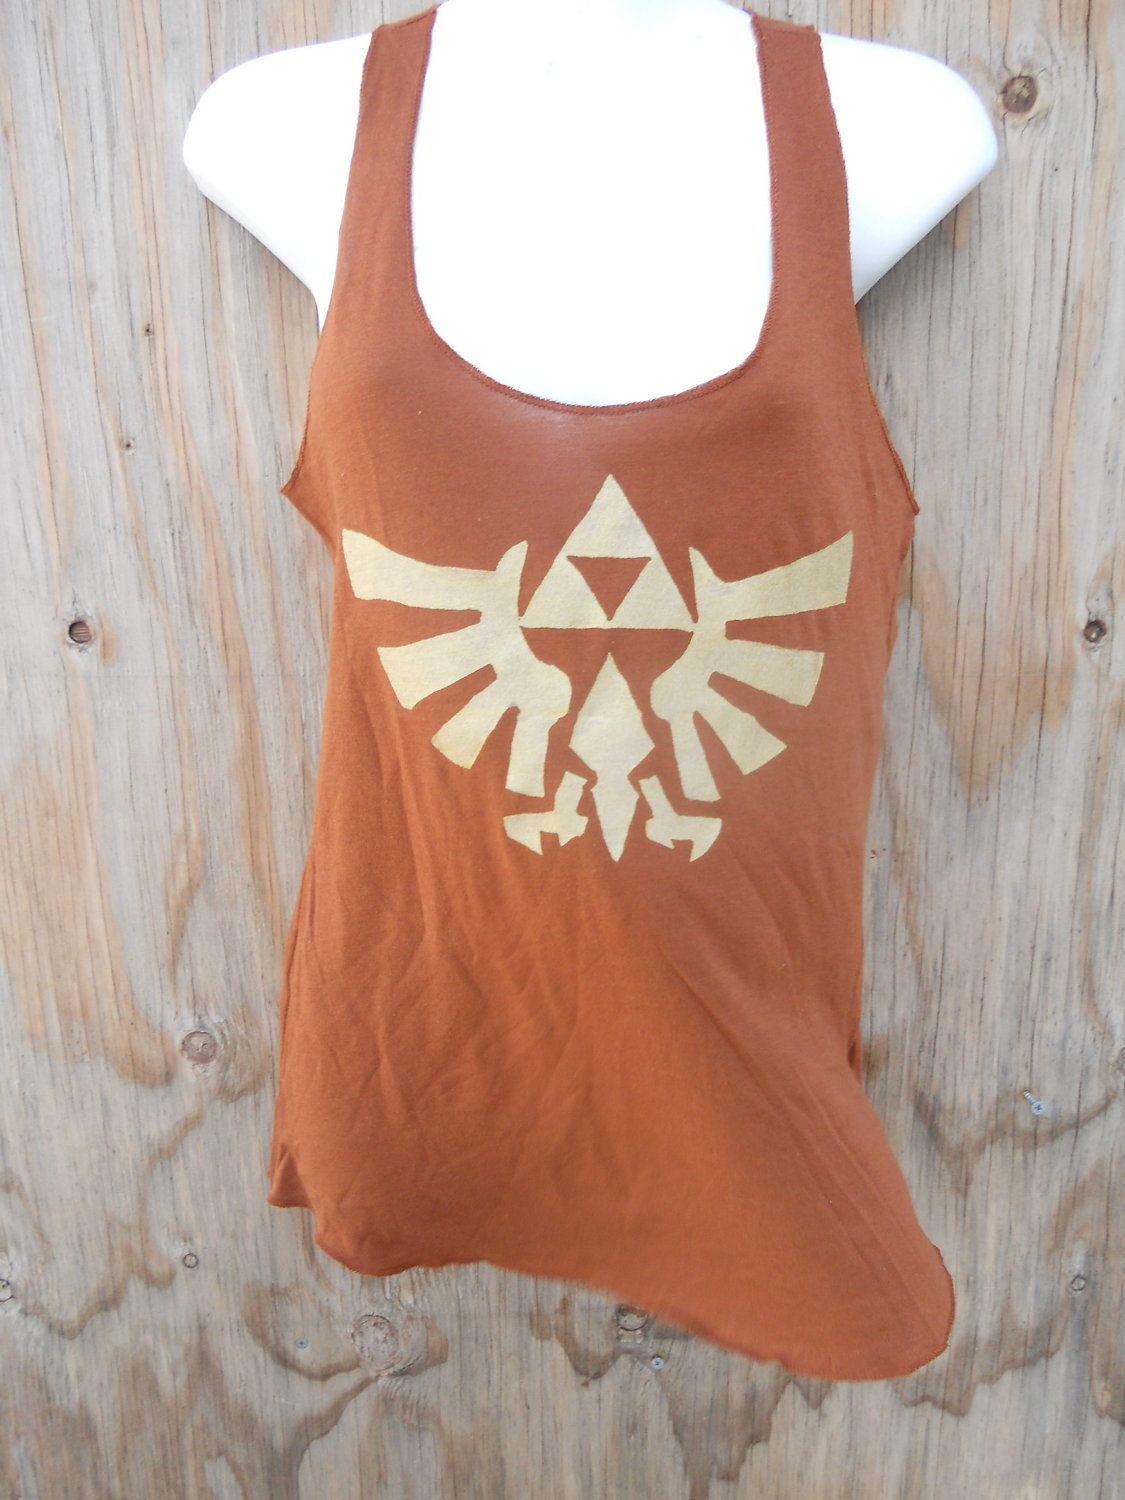 Brown Legend of Zelda Triforce Eagle Racerback tank top. $20.00, via Etsy.